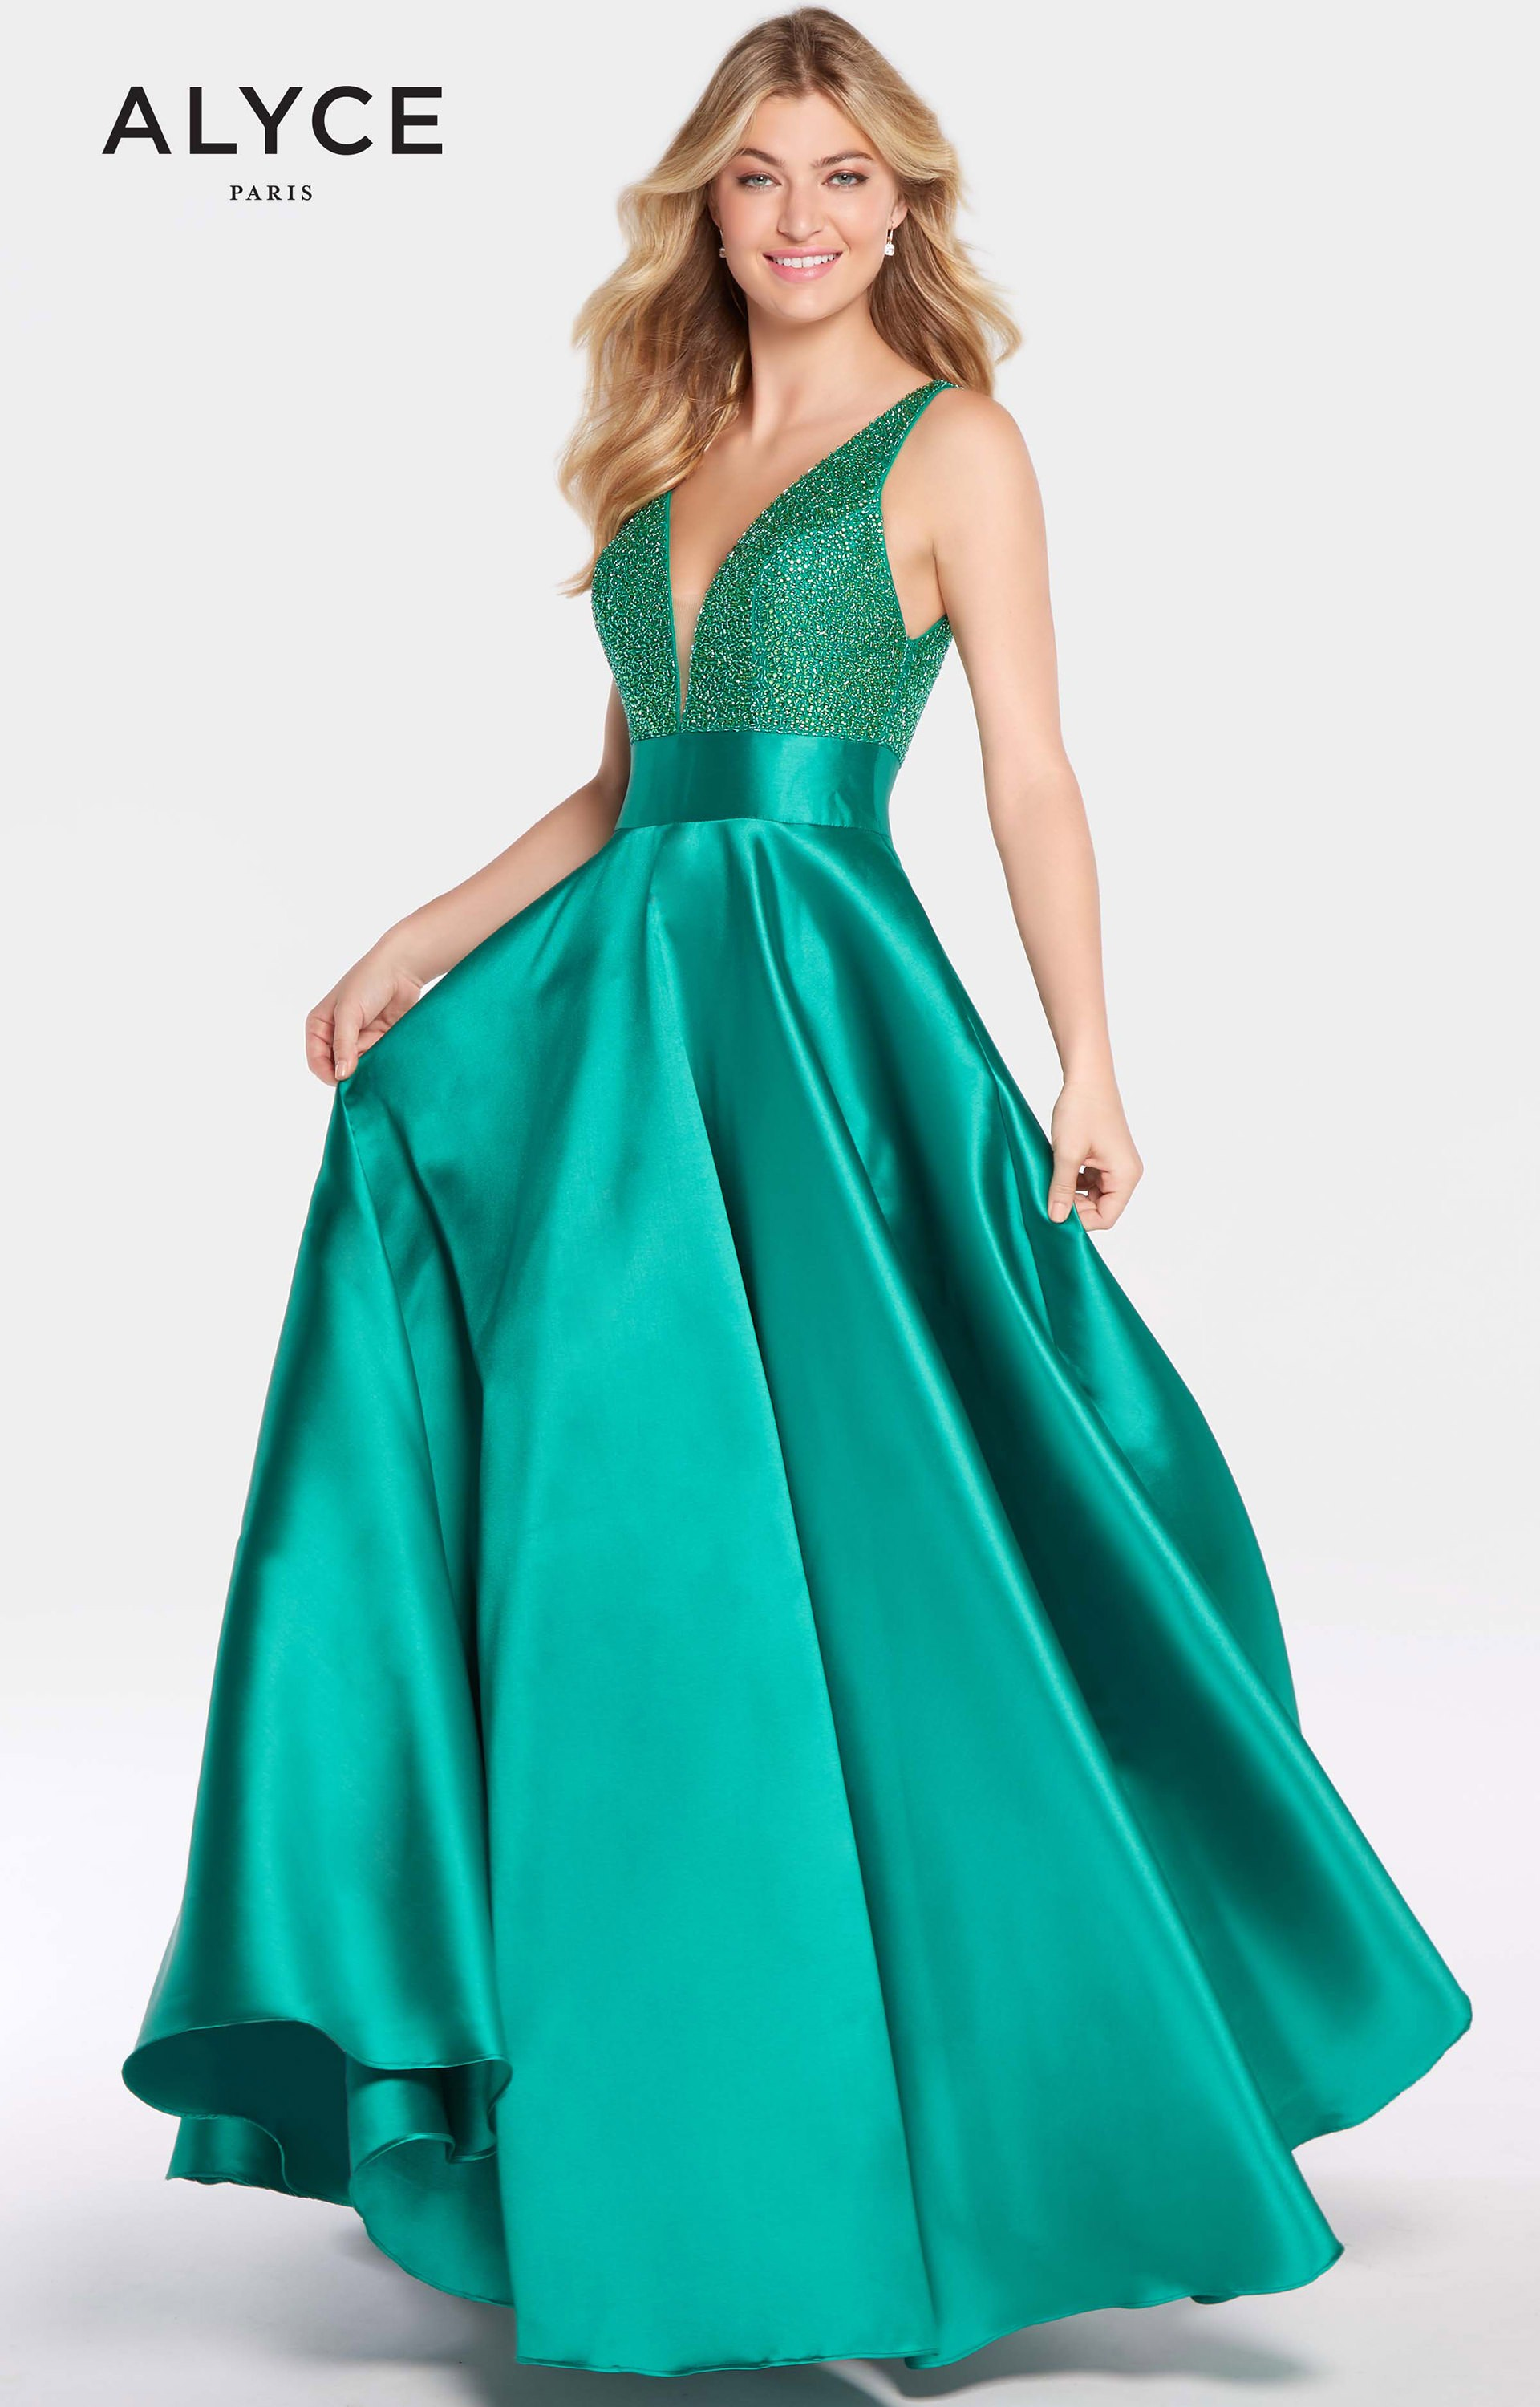 Alyce Paris 60224 - A-line with Beaded Bodice and V-neck Prom Dress